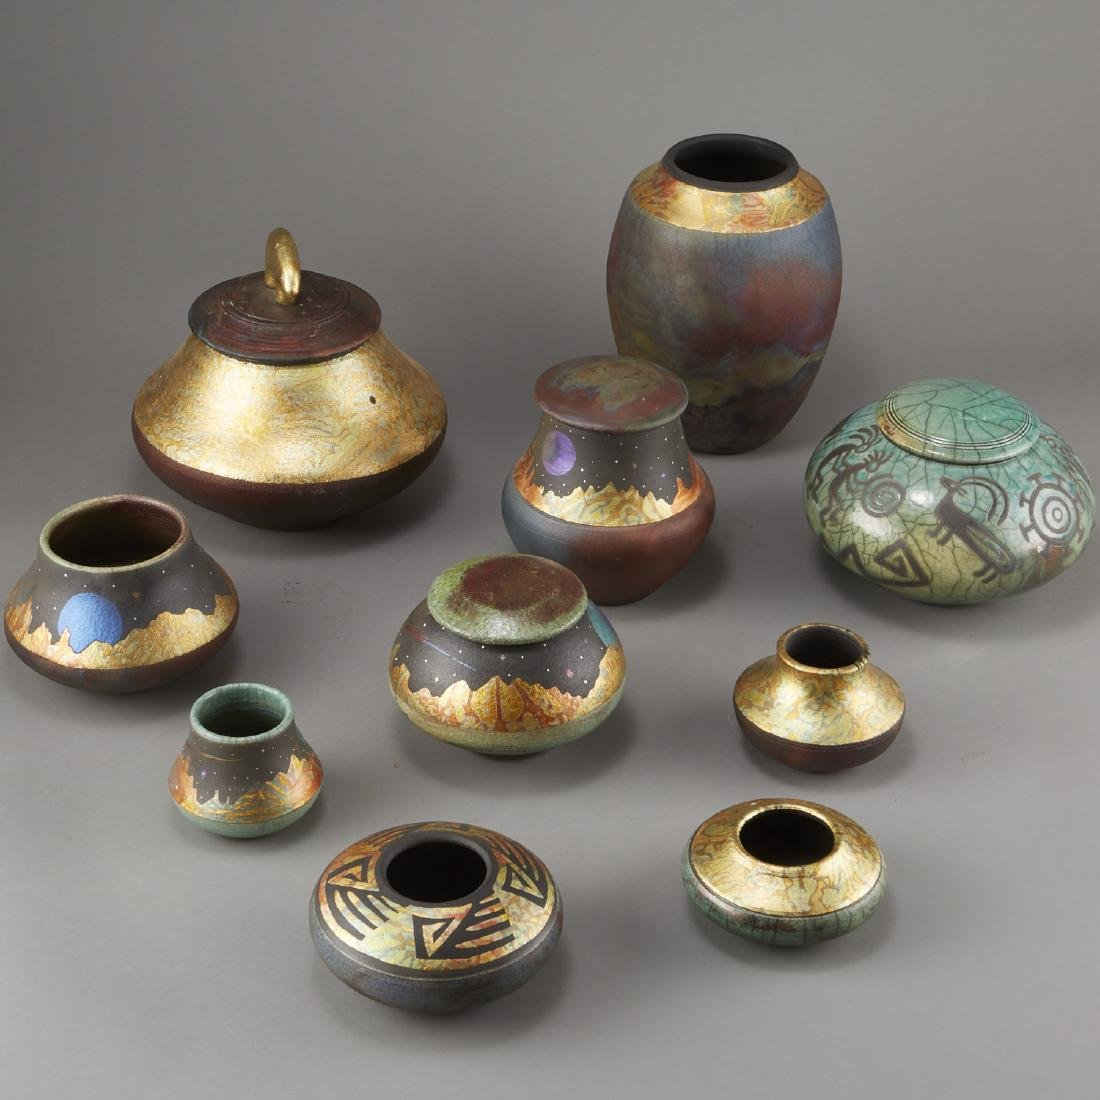 Group of 10 Rick Loewenkamp Raku Pottery - 4